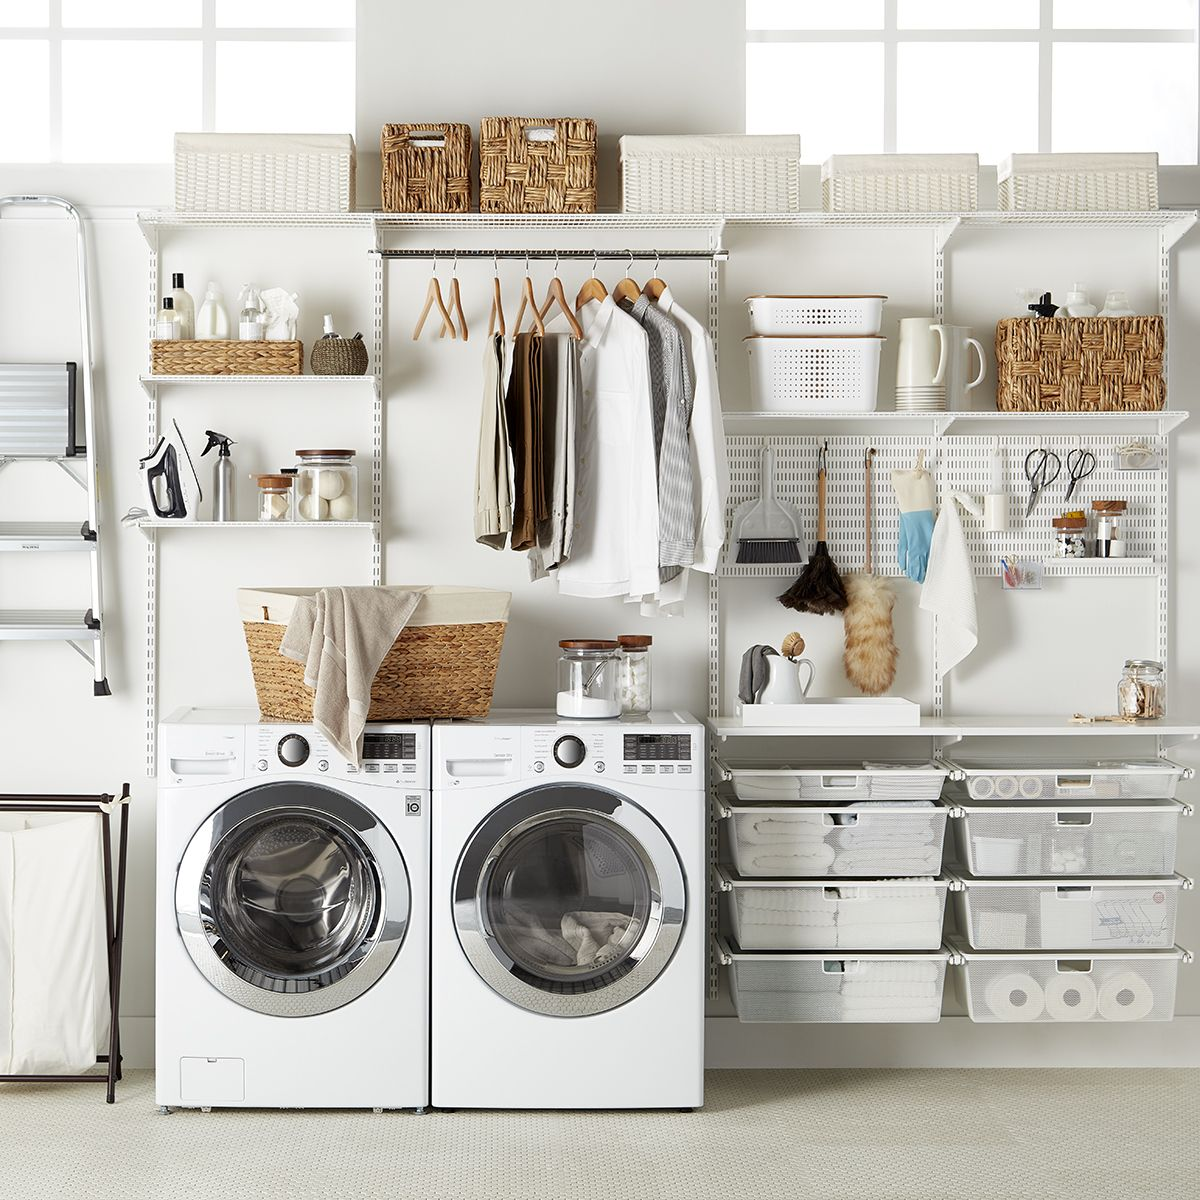 Sort Out Your Laundry Room Challenges With Our Exclusive Elfa Shelving And Drawer System